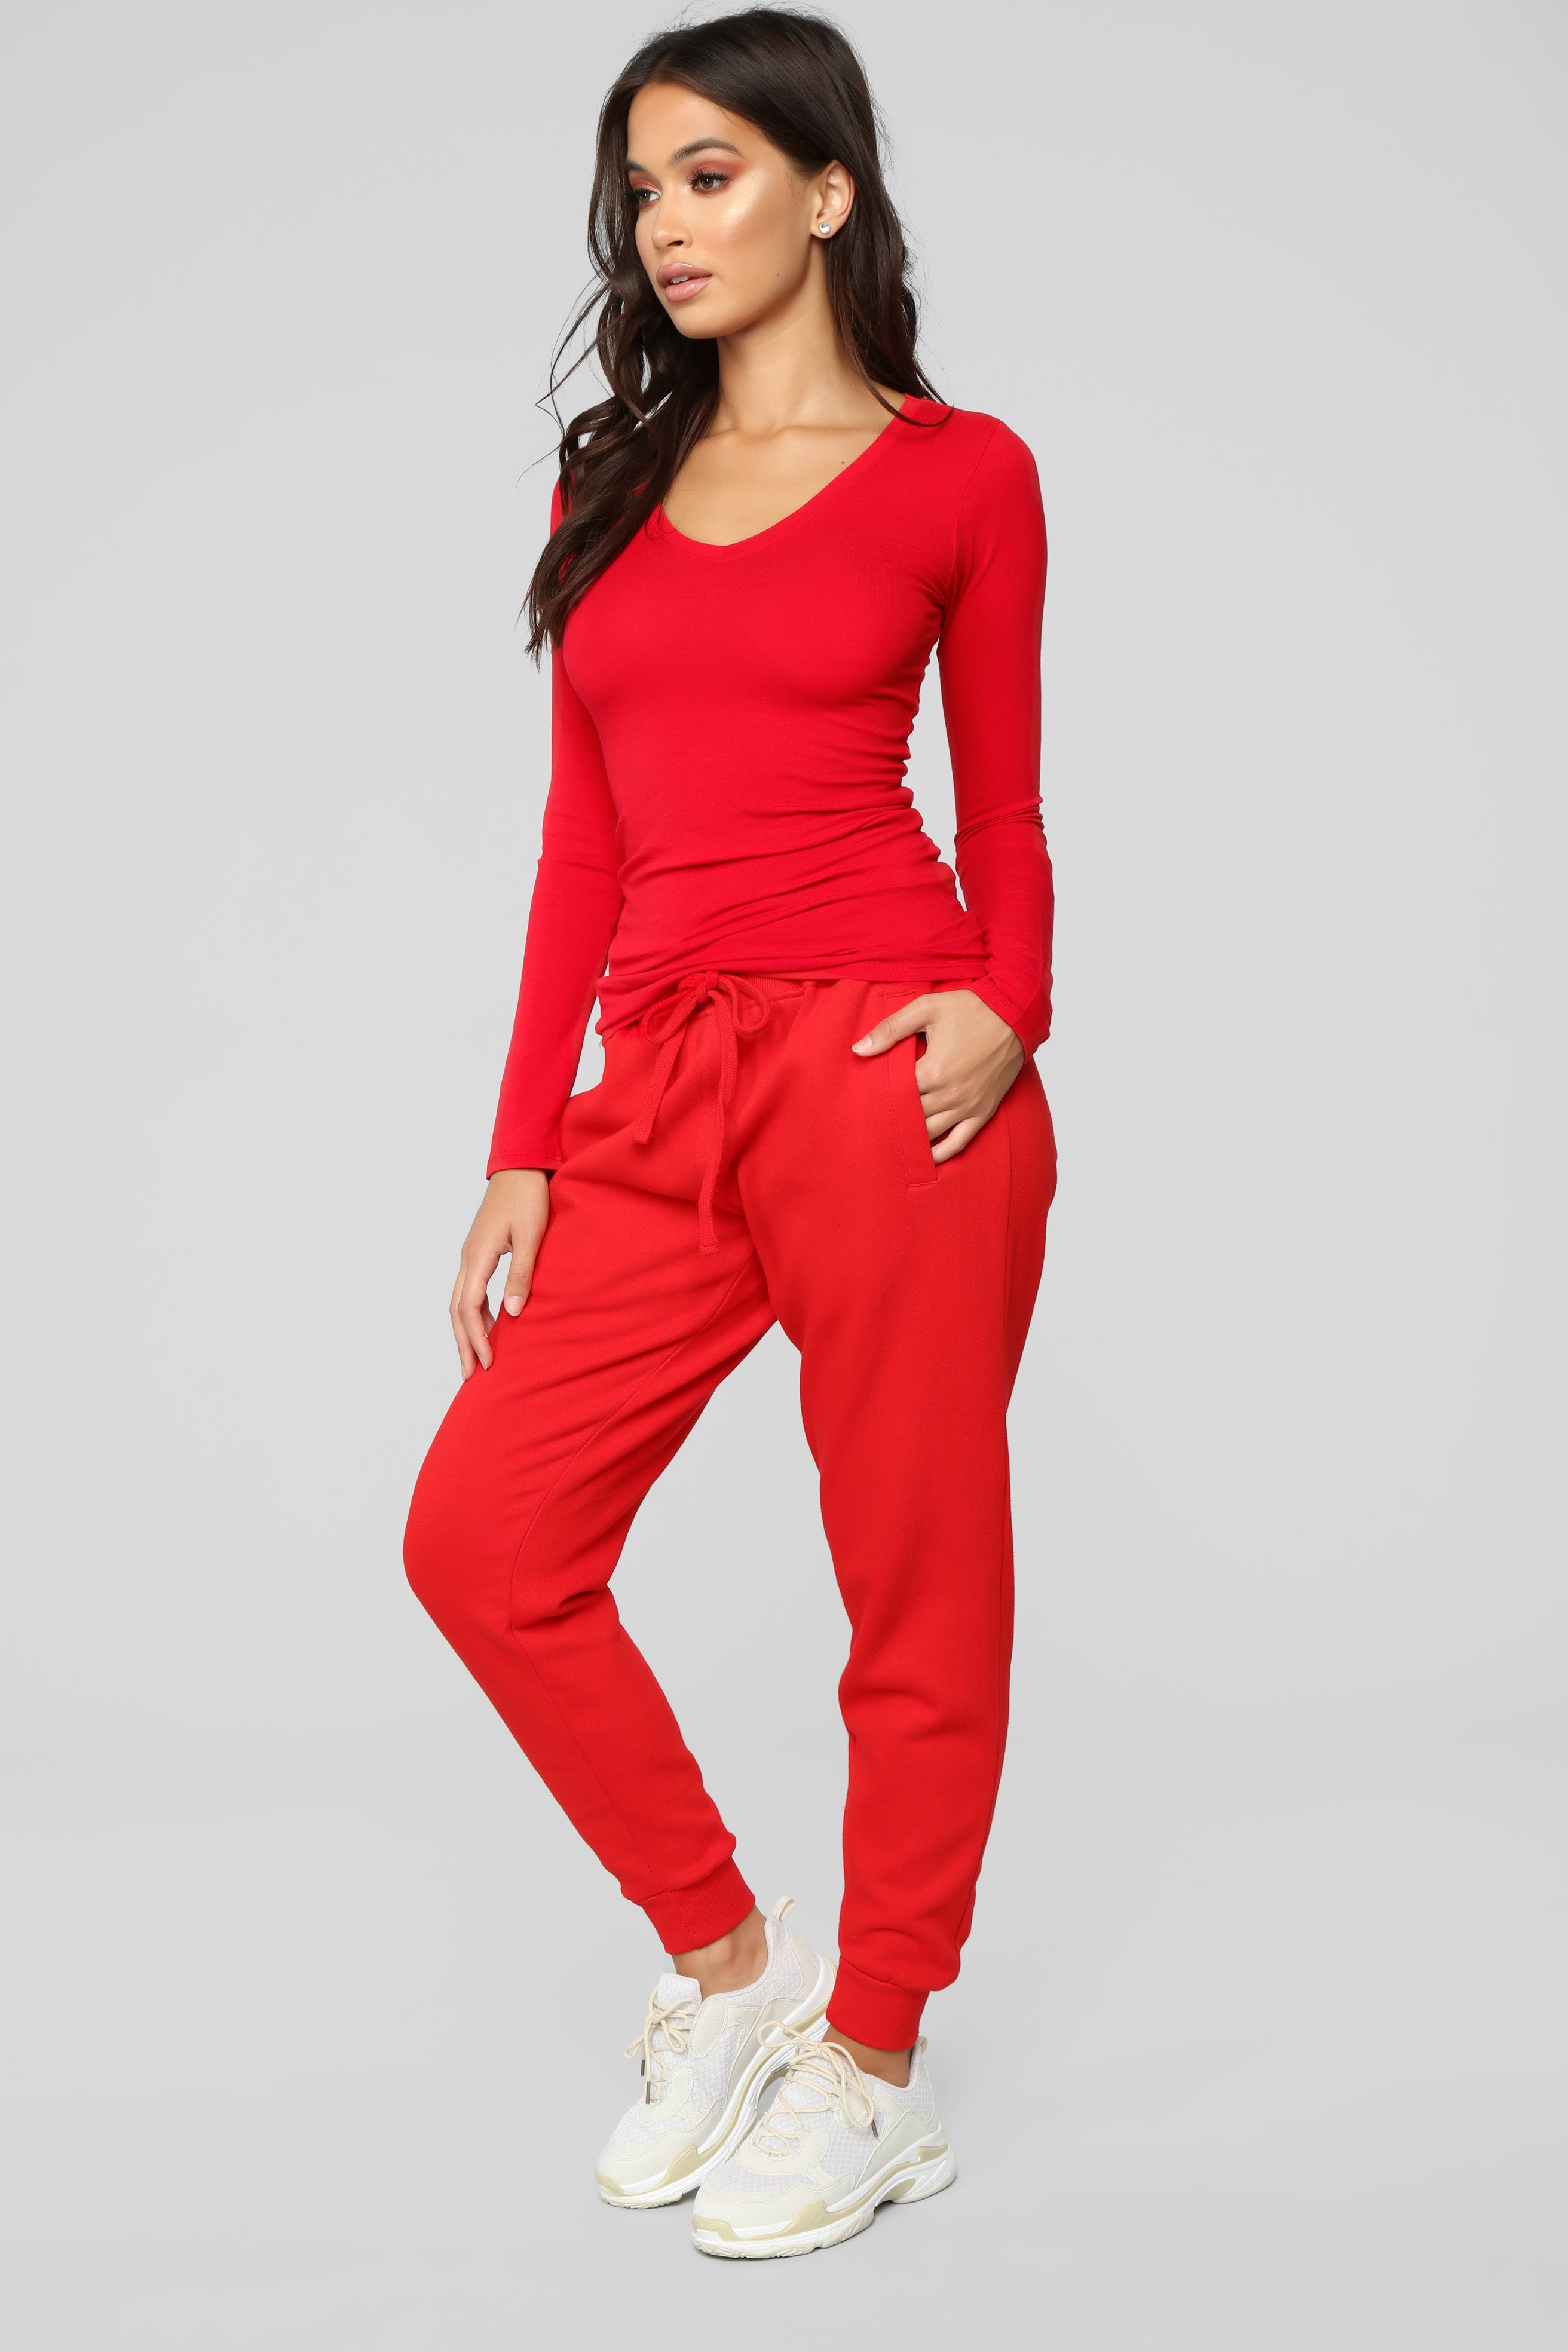 275a5002a4b Your Everyday Long Sleeve Tee - Red